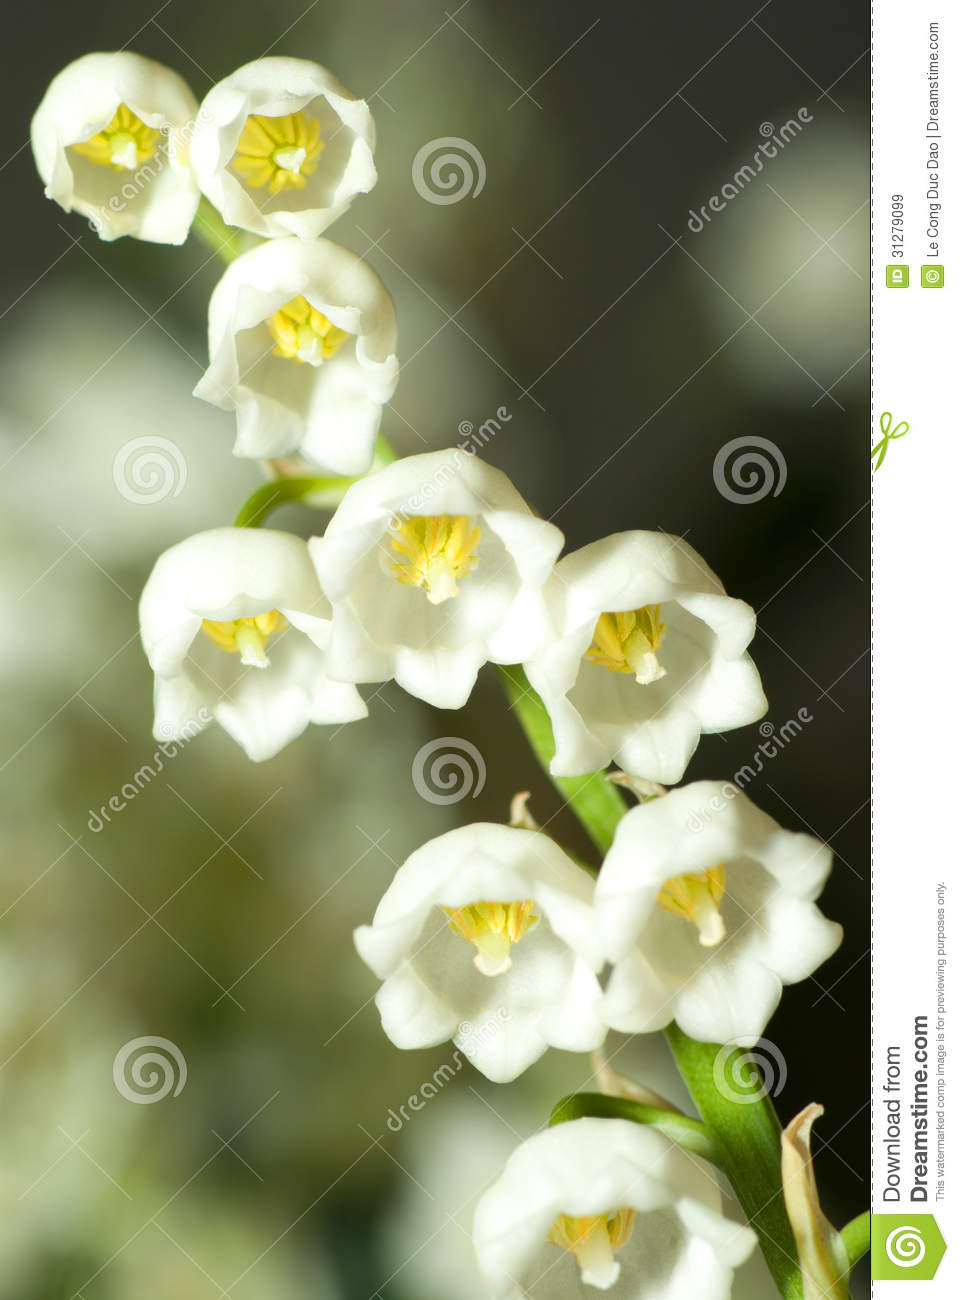 Lily of the valley stock image image of close green 31279099 download lily of the valley stock image image of close green 31279099 izmirmasajfo